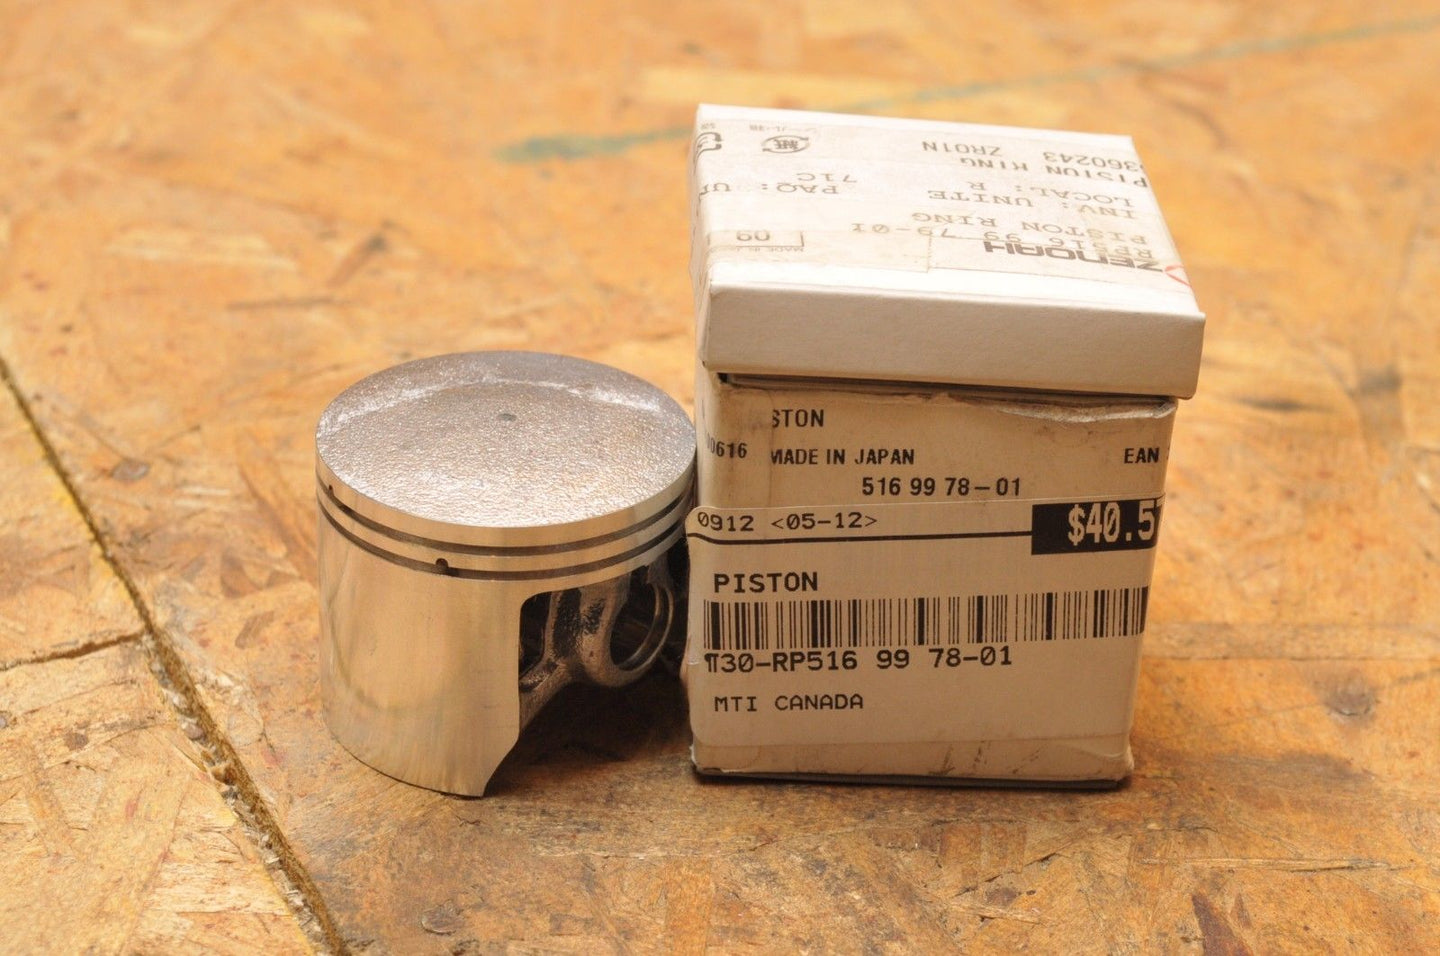 NEW NOS MTI PISTON - (HUSQVARNA?) 516 99 78-01 / 72880 WITH RINGS